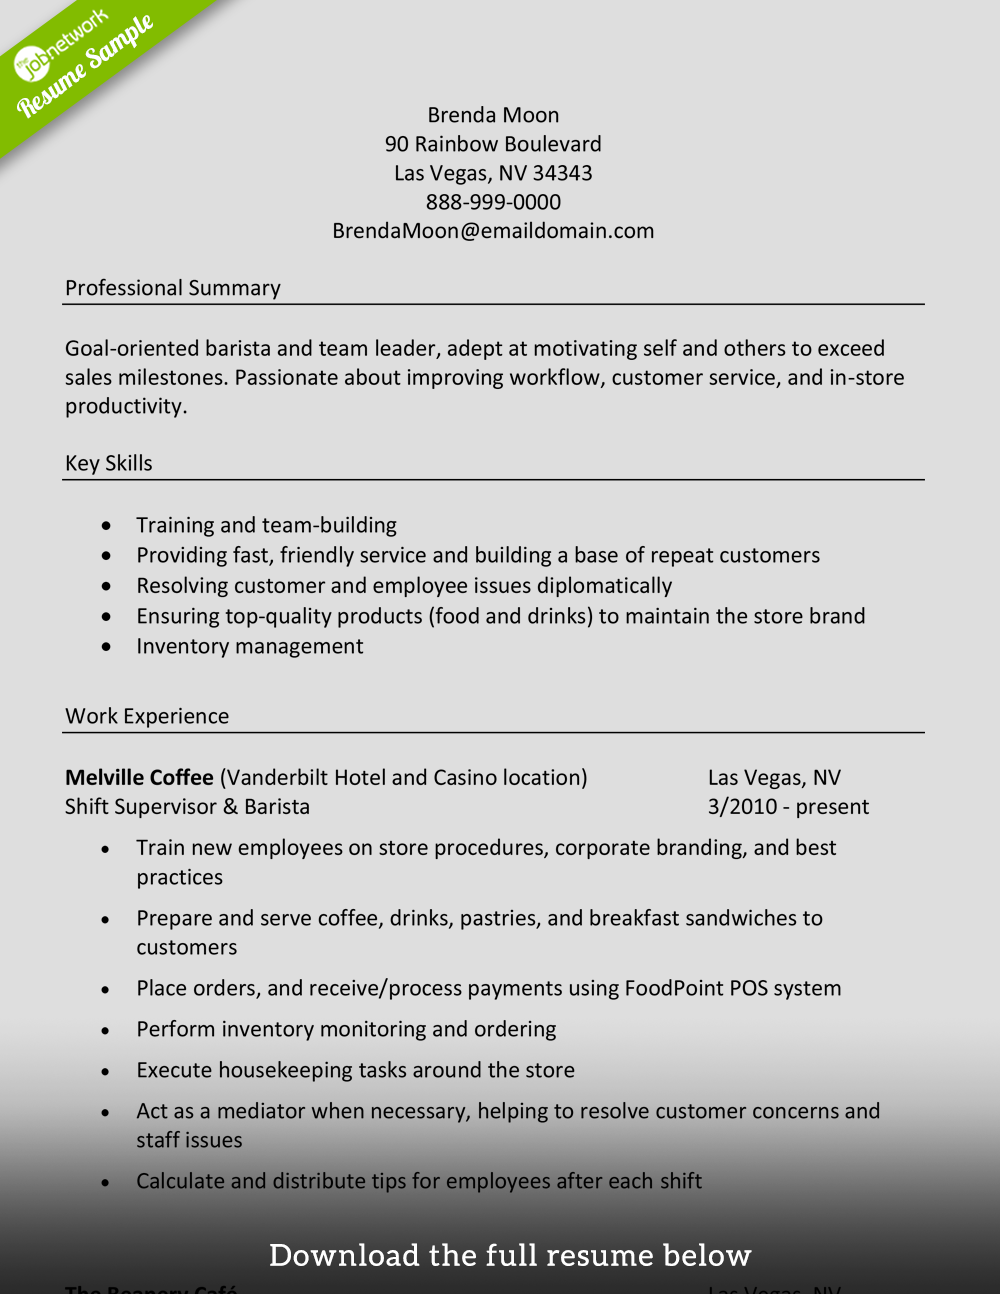 How to Write a Perfect Barista Resume (Examples Included)